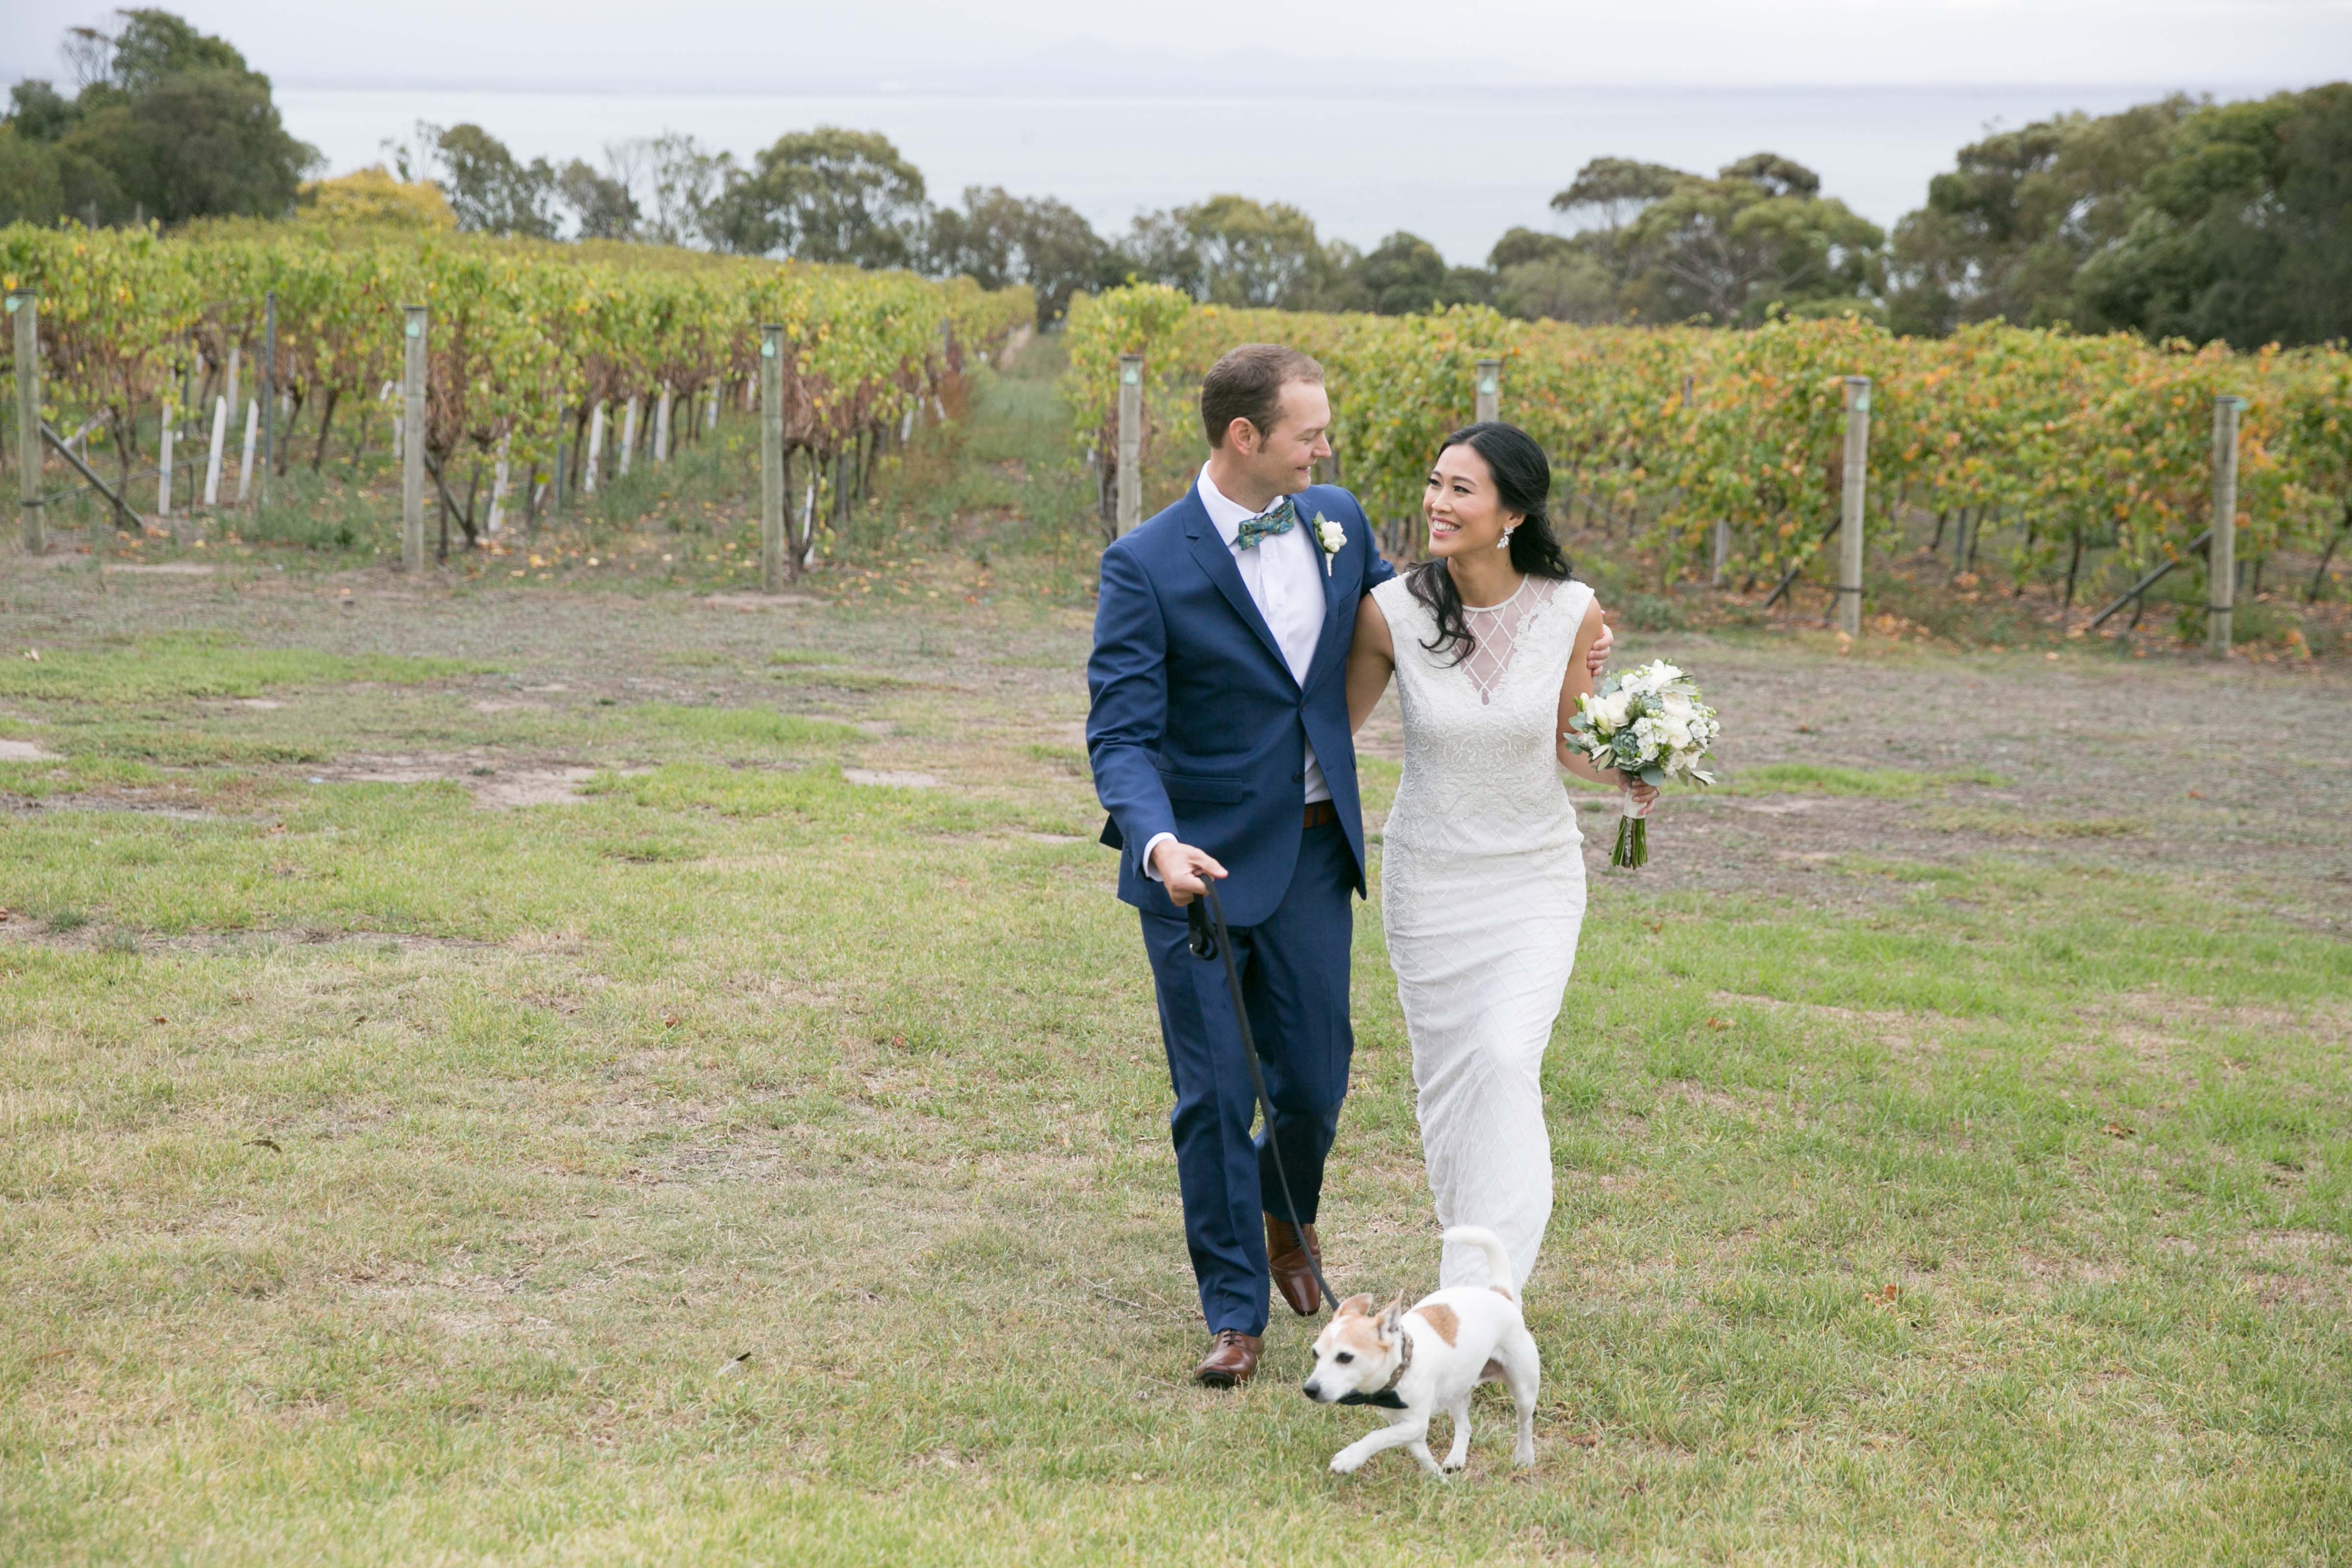 Wedding couple taking their dog for a walk - thinking-of-having-your-dog-at-your-wedding?